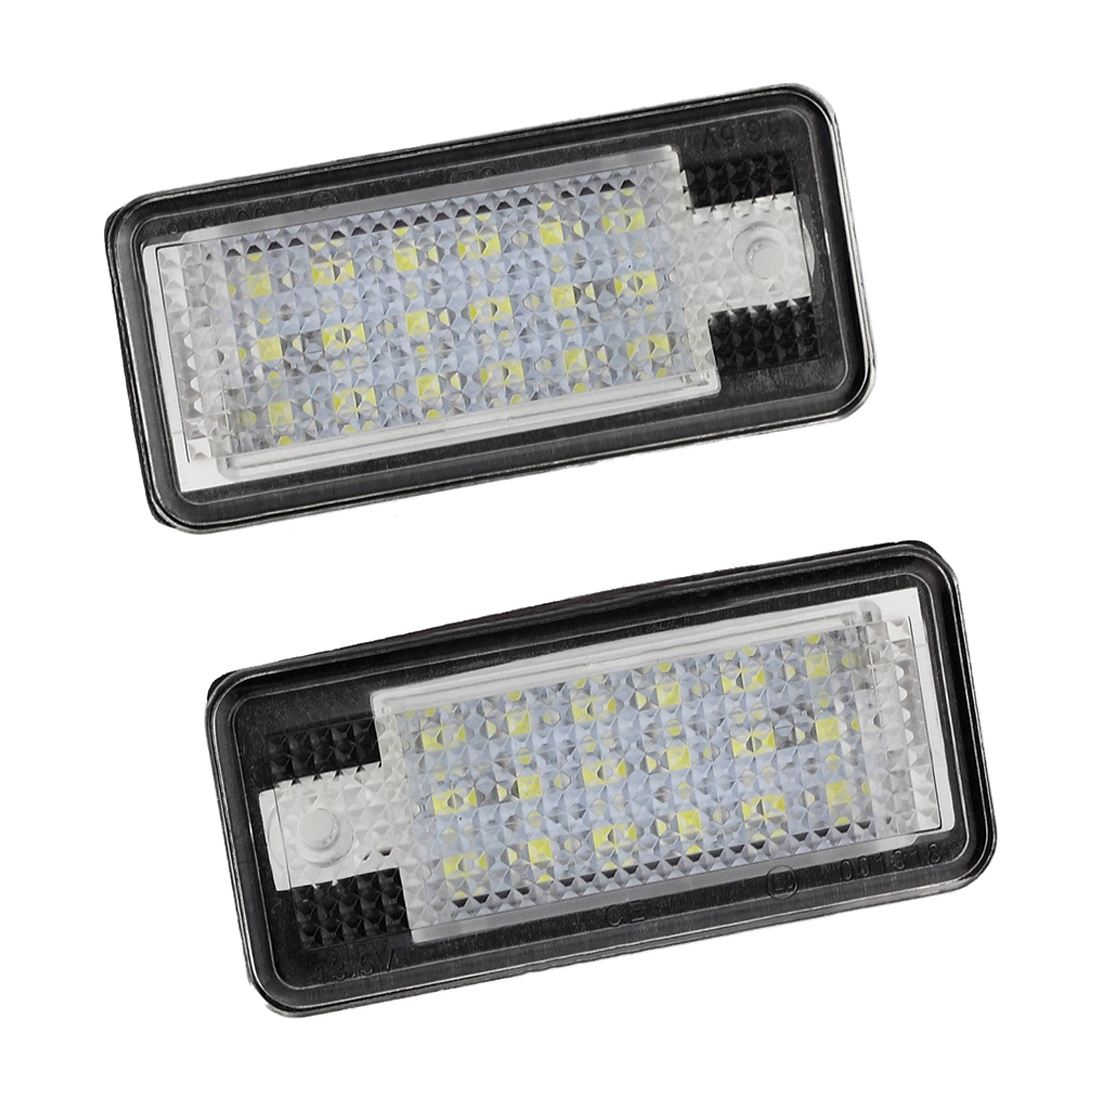 2x 18 LED License Number Plate Light Lamp For Audi A3 S3 A4 S4 B6 A6 S6 A8 S8 Q7(China (Mainland))